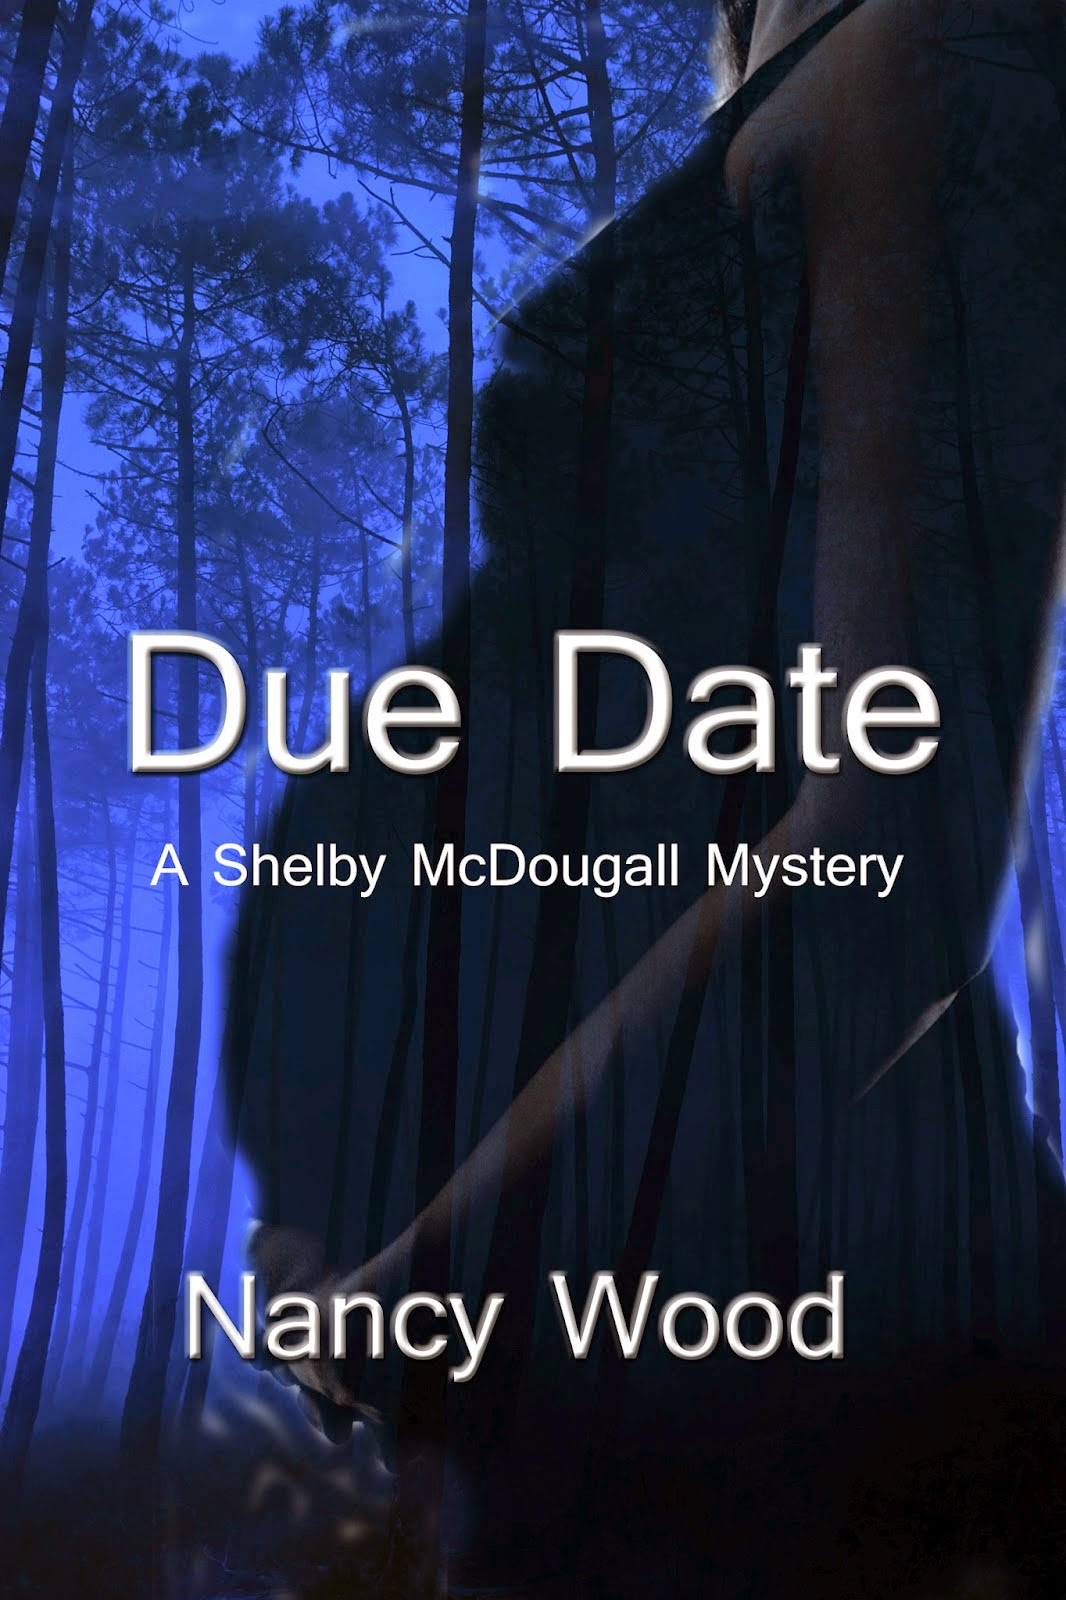 http://www.amazon.com/Due-Date-Nancy-W-Wood-ebook/dp/B00876174M/ref=la_B0088DJMAK_1_1?s=books&ie=UTF8&qid=1419912172&sr=1-1